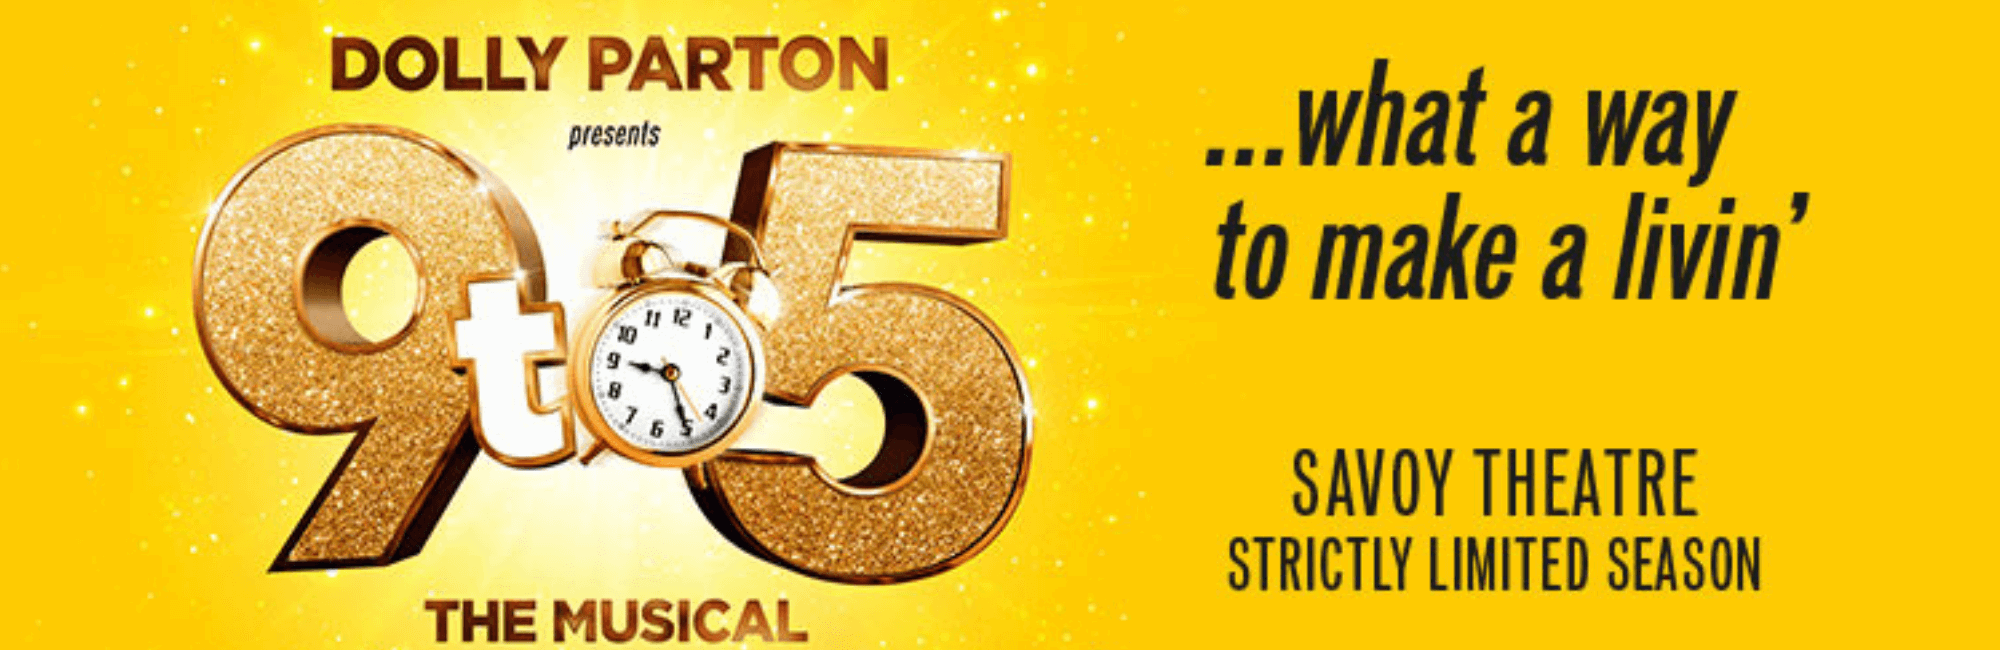 Theatre packages for 9 to 5 the Musical at Balthazar in Covent Garden